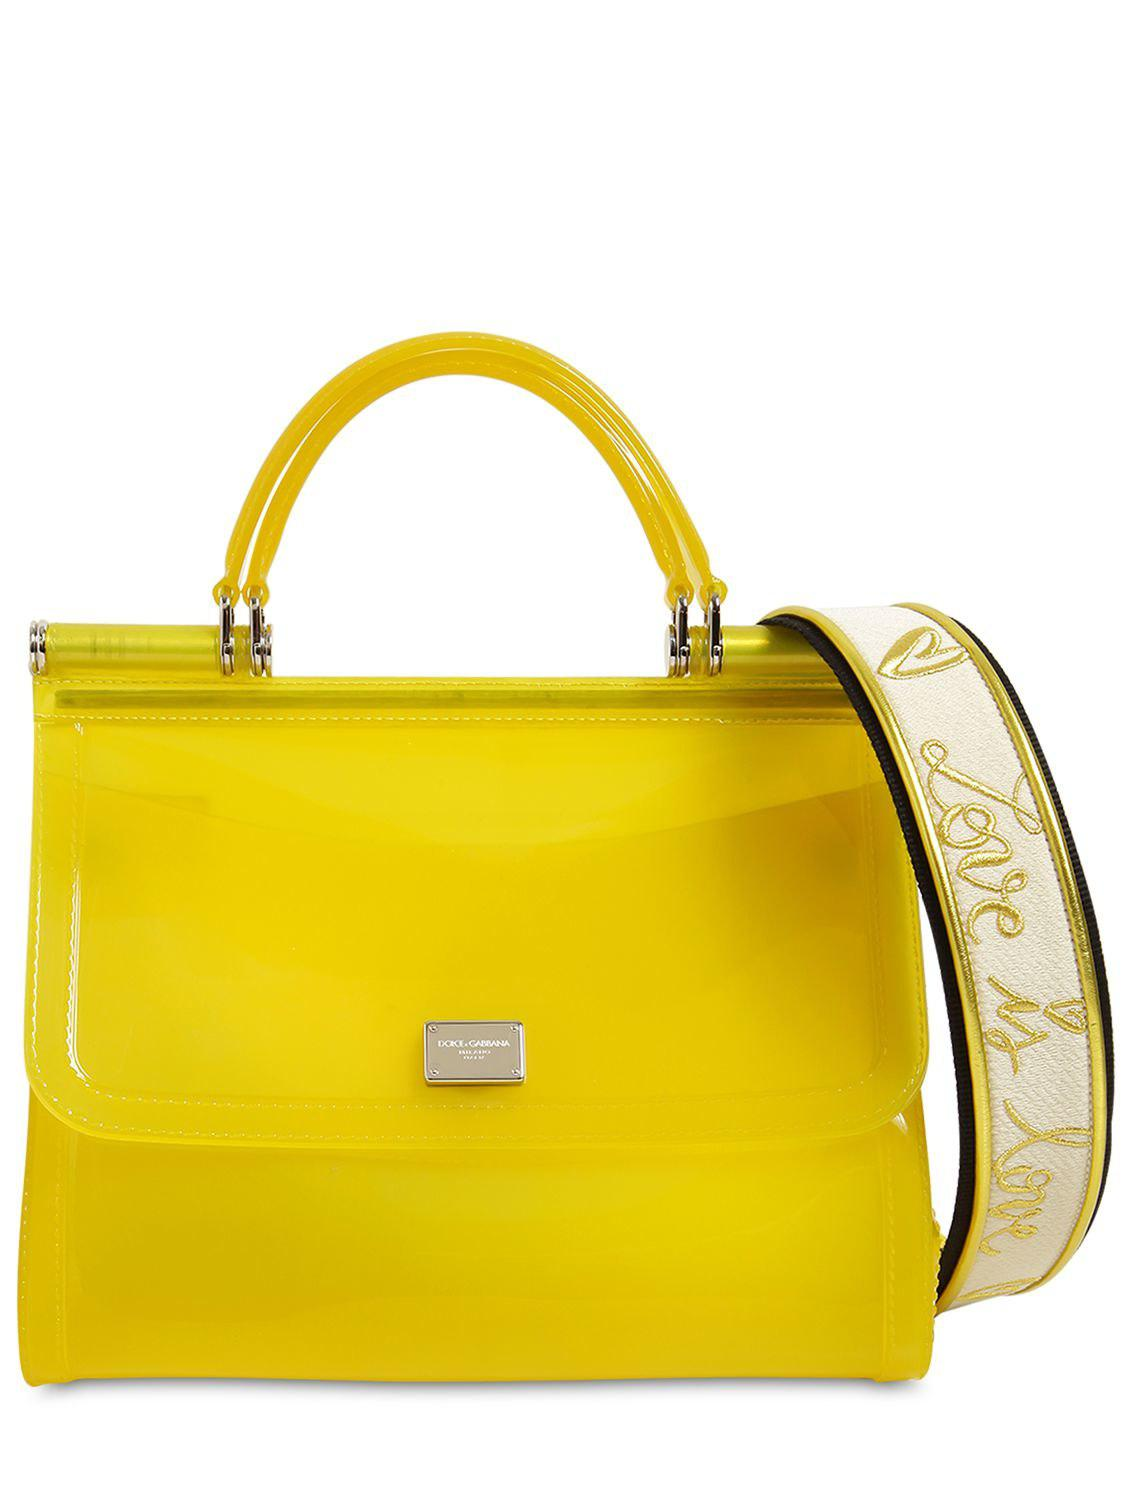 Dolce   Gabbana Sicily Faux Patent Leather Bag in Yellow - Lyst 0701e8bb110b3